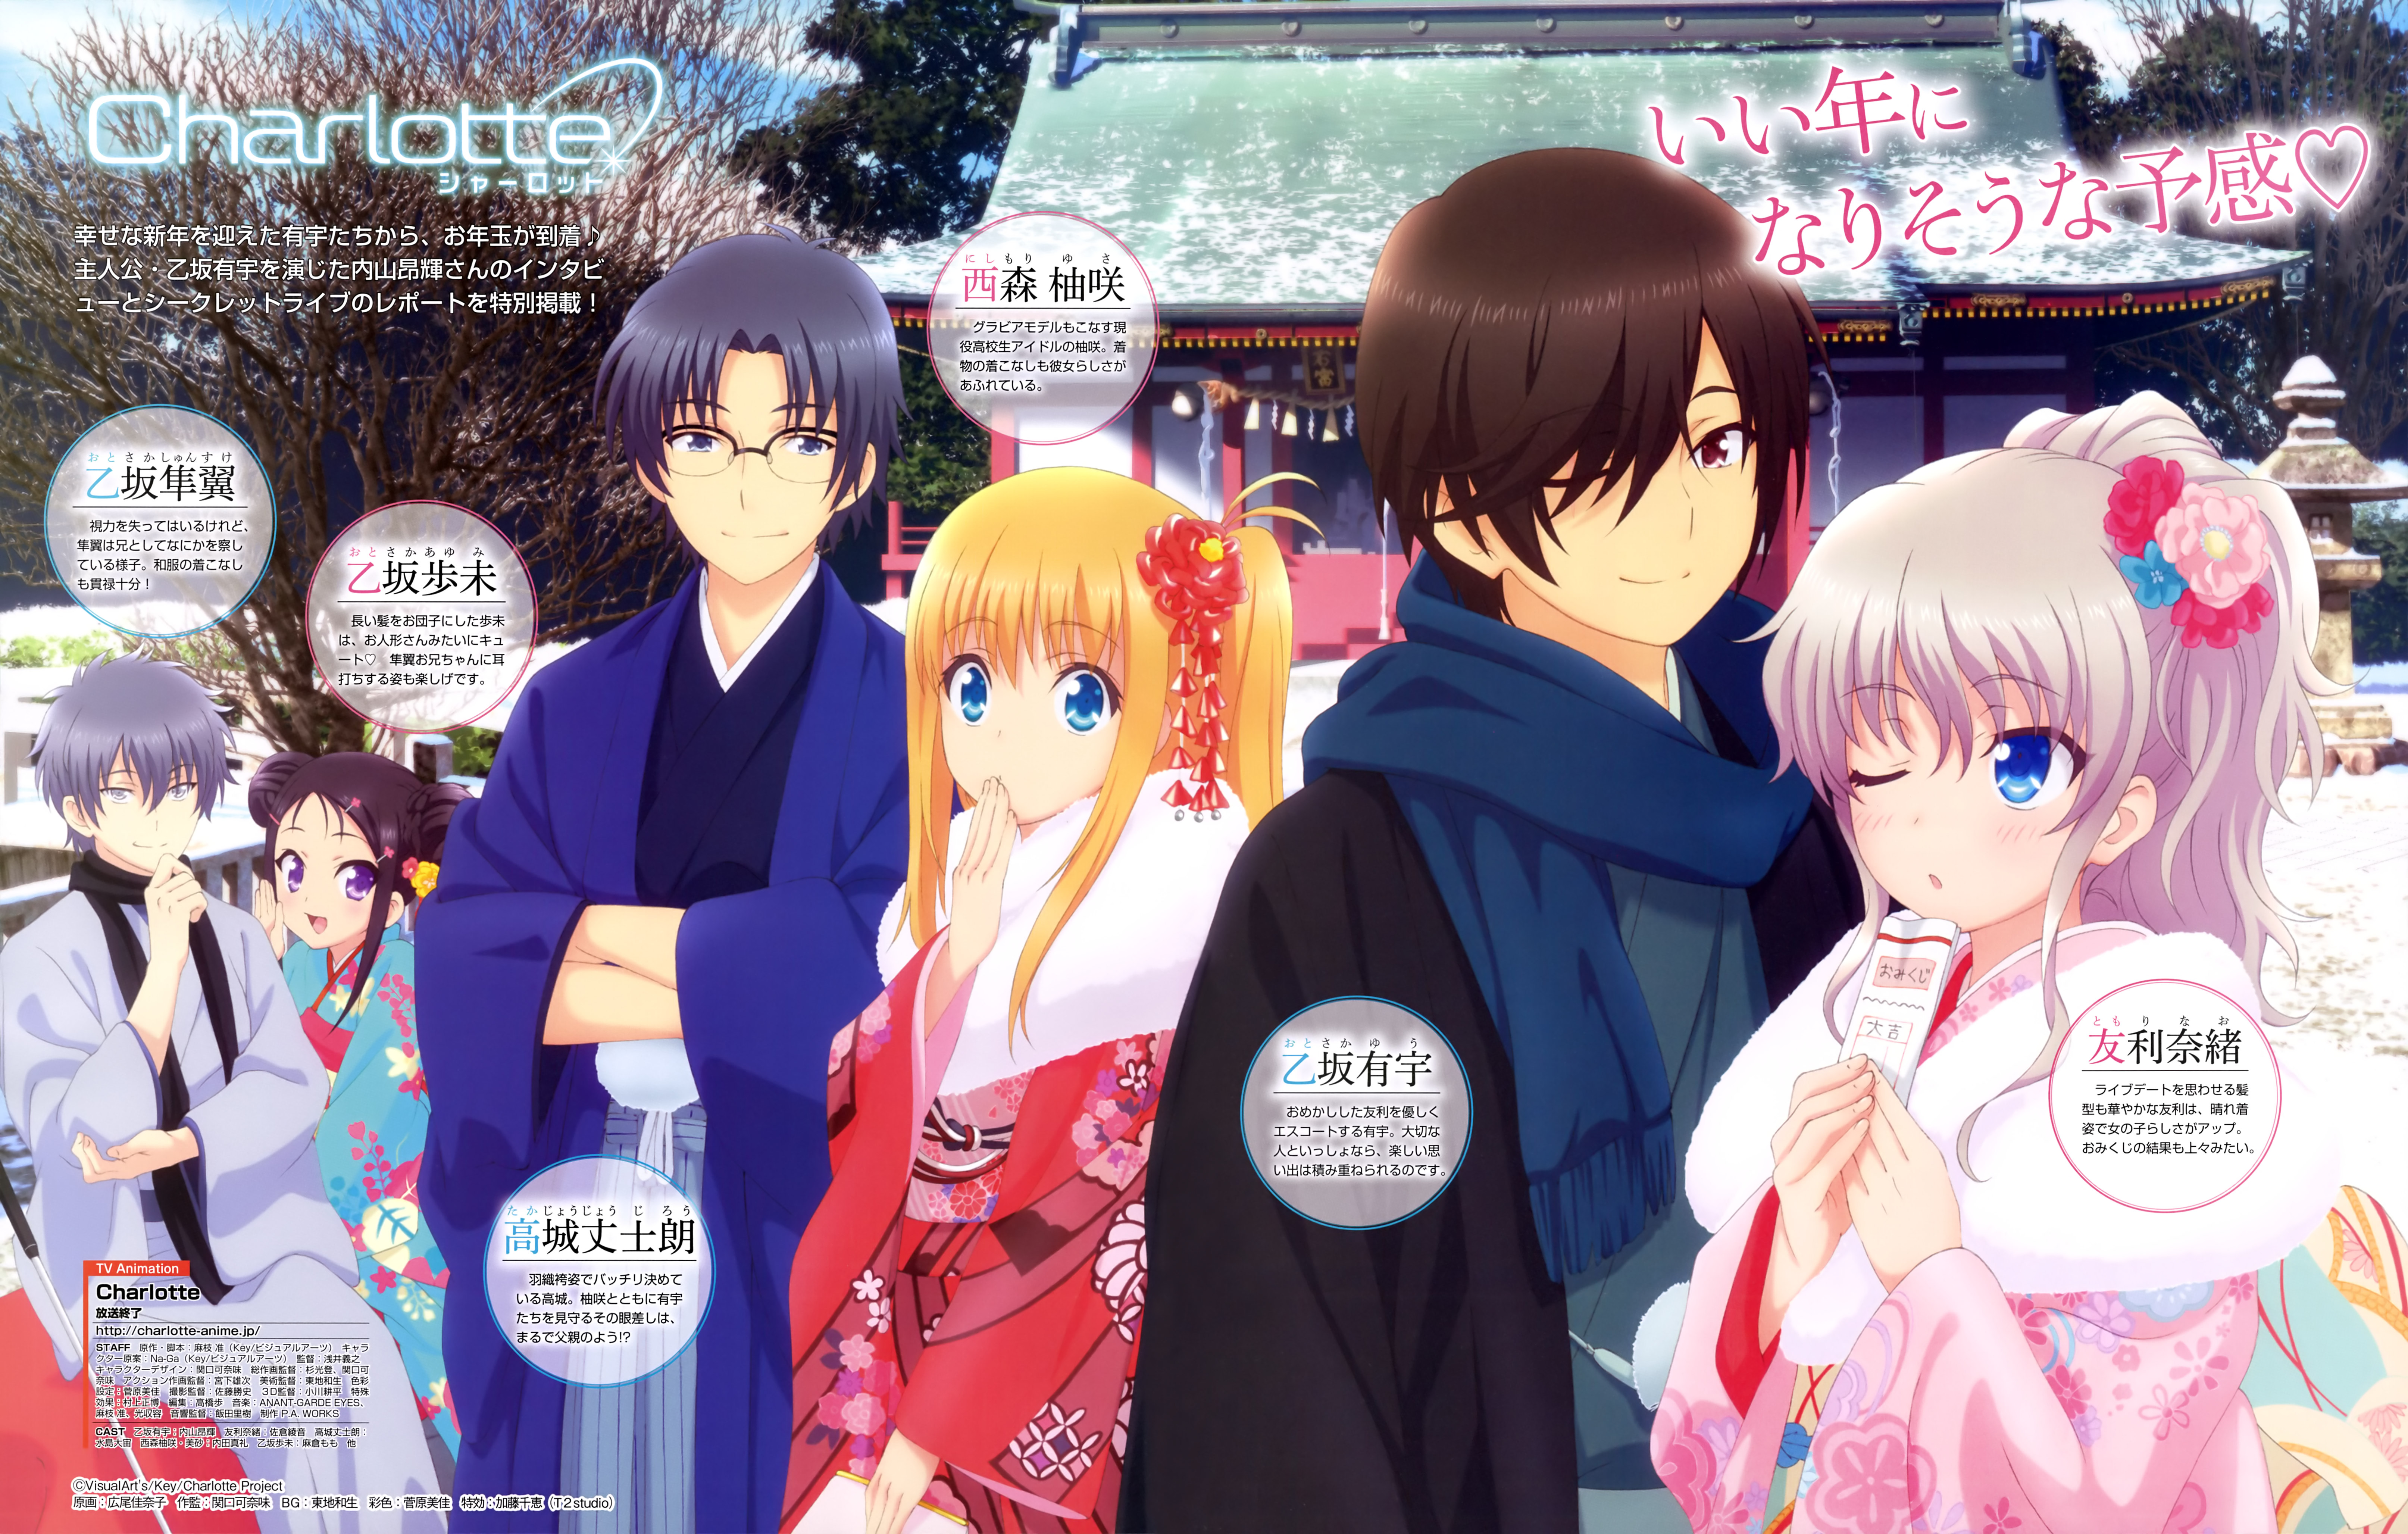 The-Cast-of-Charlotte-Anime-Wish-You-a-Happy-New-Year